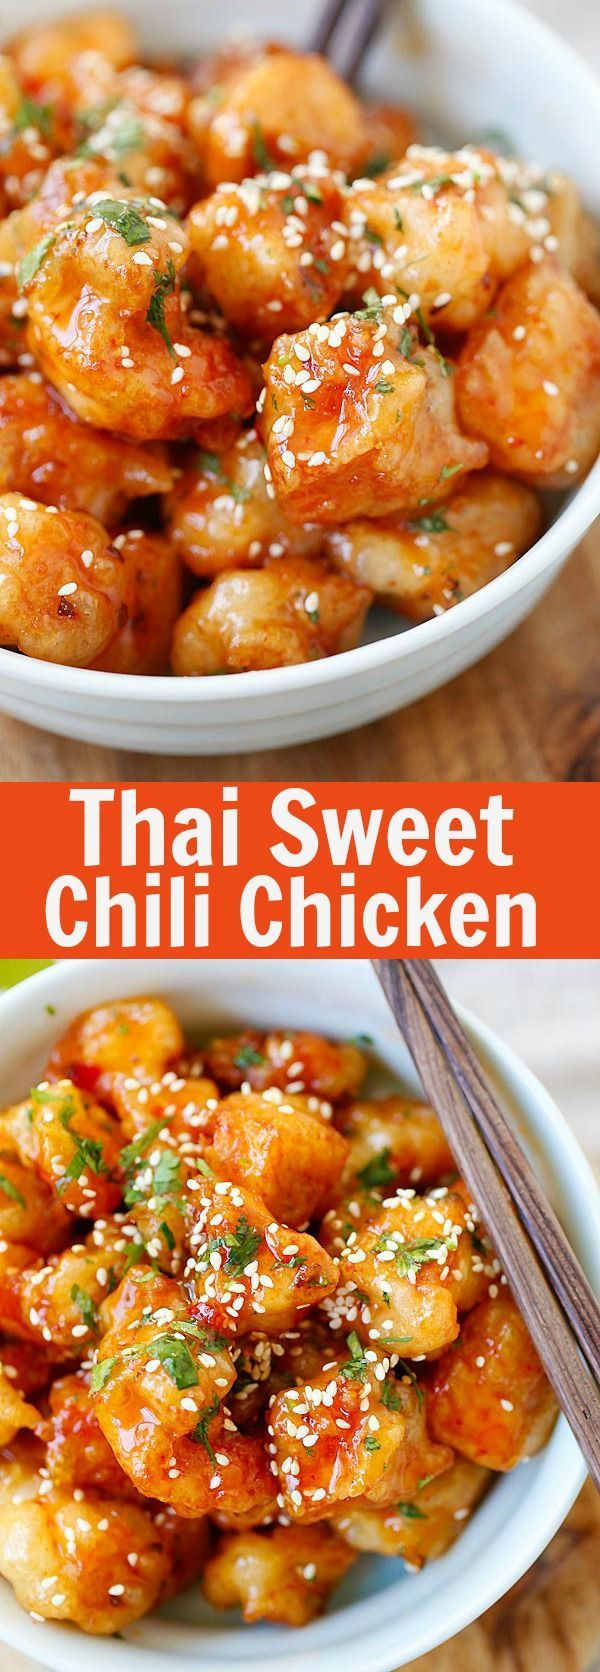 Thai Sweet Chili Chicken – amazing and best-ever chicken recipe with sticky sweet and savory sweet chili sauce. SO good |Thai Sweet Chili Chicken – amazing and best-ever chicken recipe with sticky sweet and savory sweet chili sauce. SO good |rasamalaysia.com